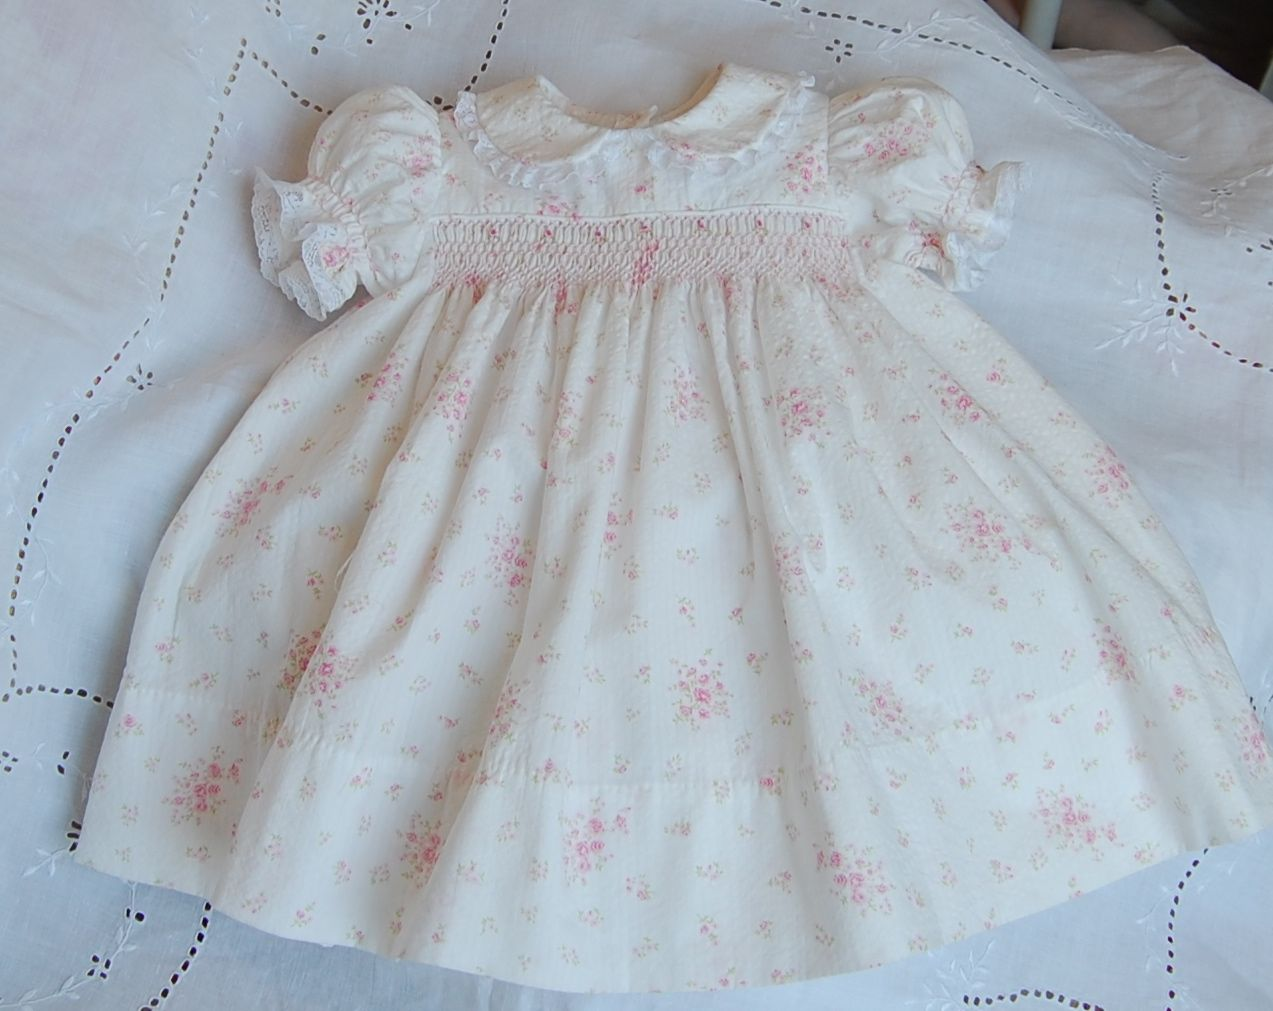 Baby Dresses - Baby Christmas Dresses - Baby Pageant Dresses Here you will find beautiful quality baby dresses at affordable prices! From the perfect infant flower girls dress or the most unique Baby Christmas Dress for your newborn girl - we carry them all!